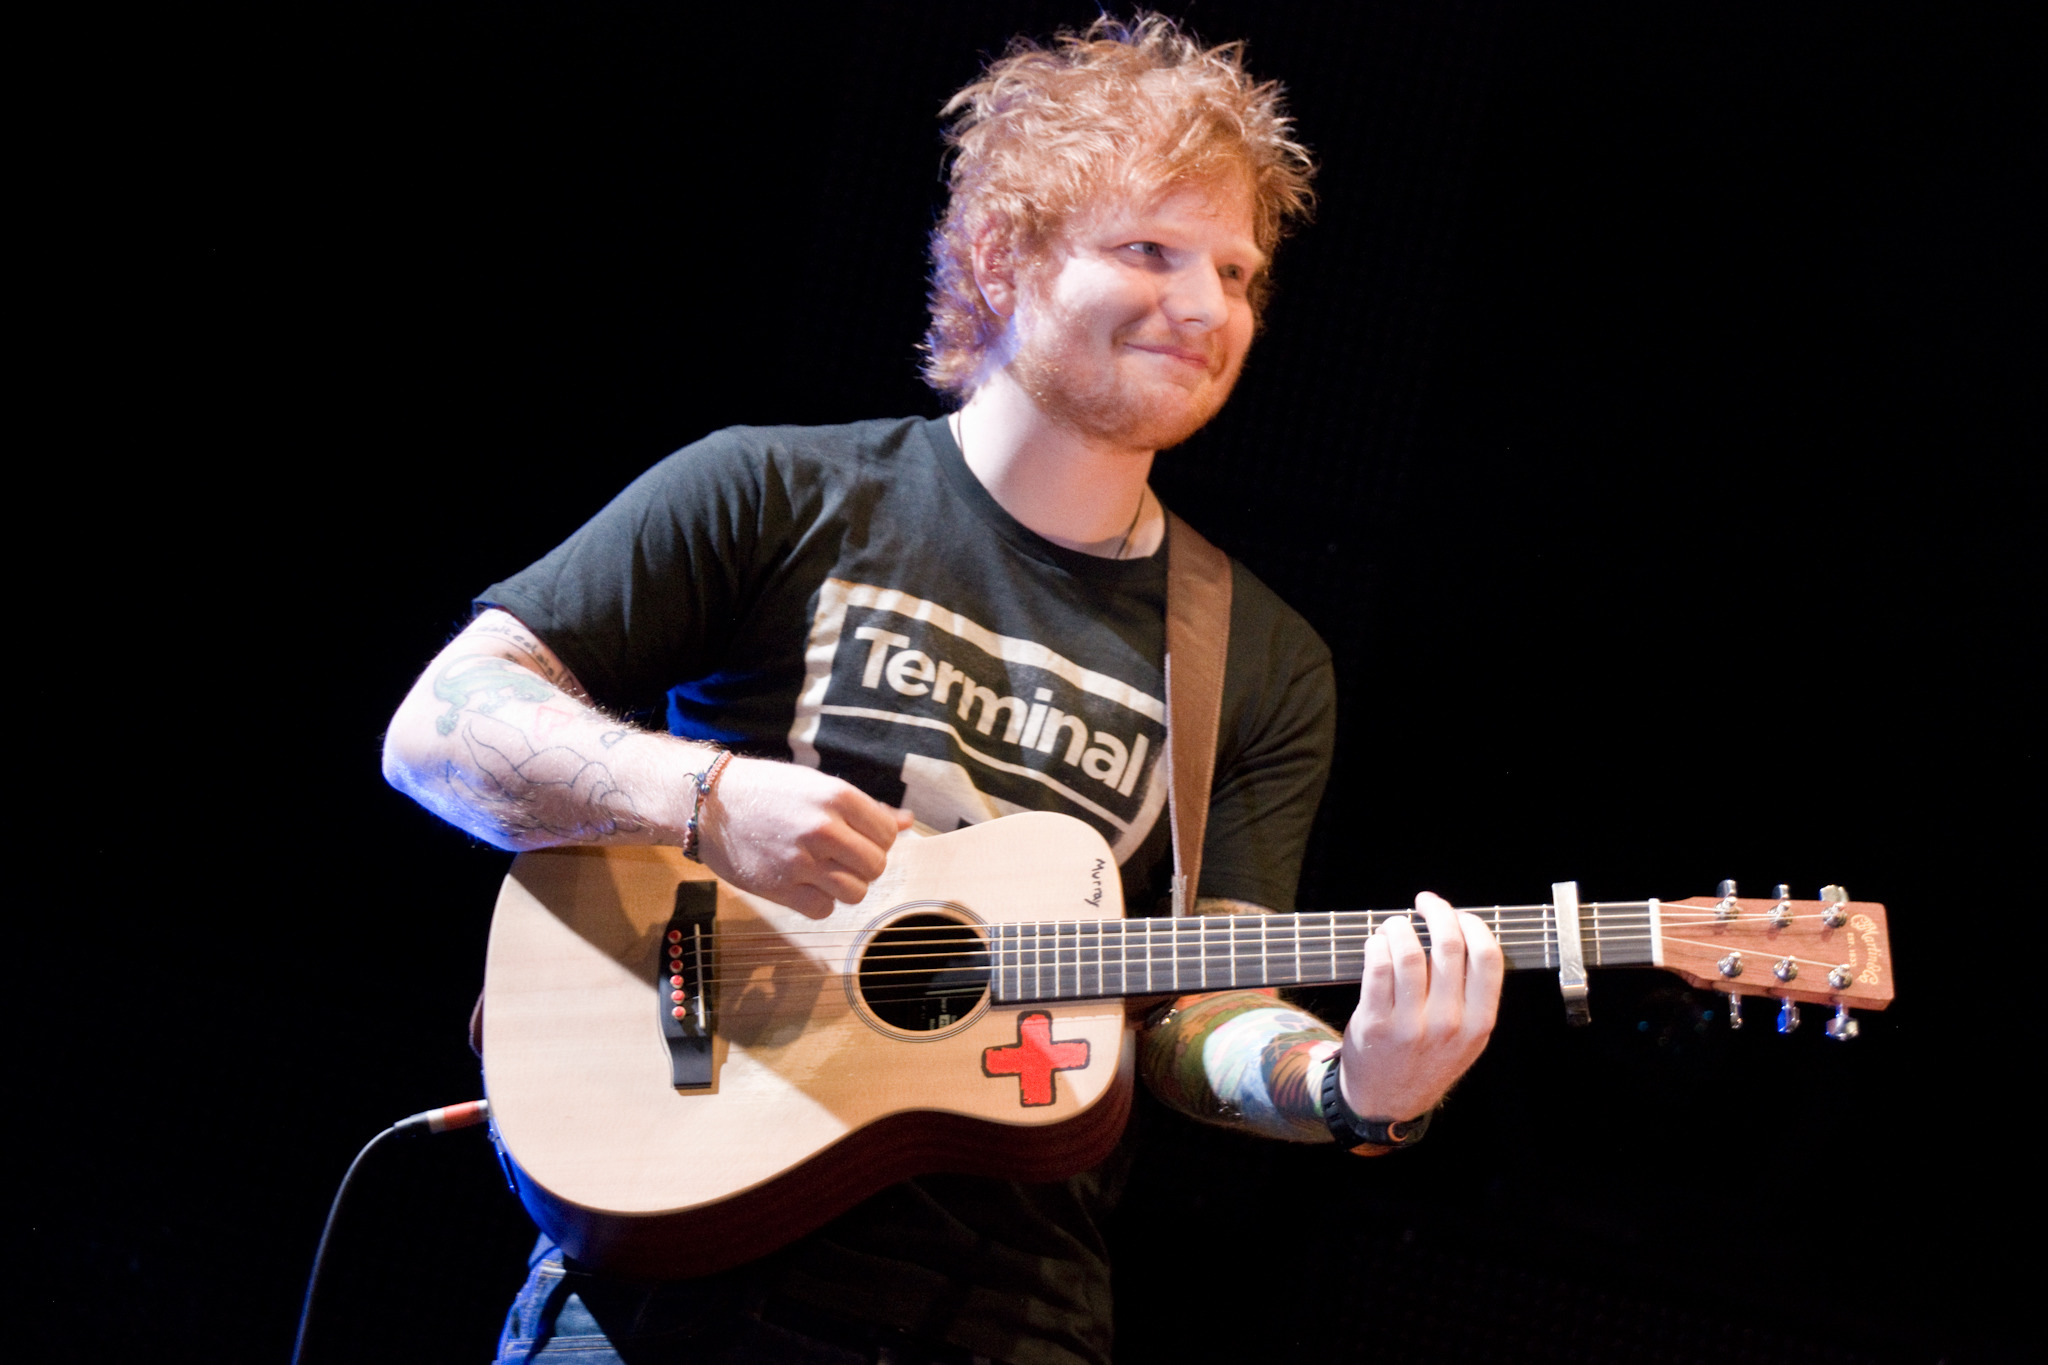 Ed Sheeran is doing a secret show in New York on March 6